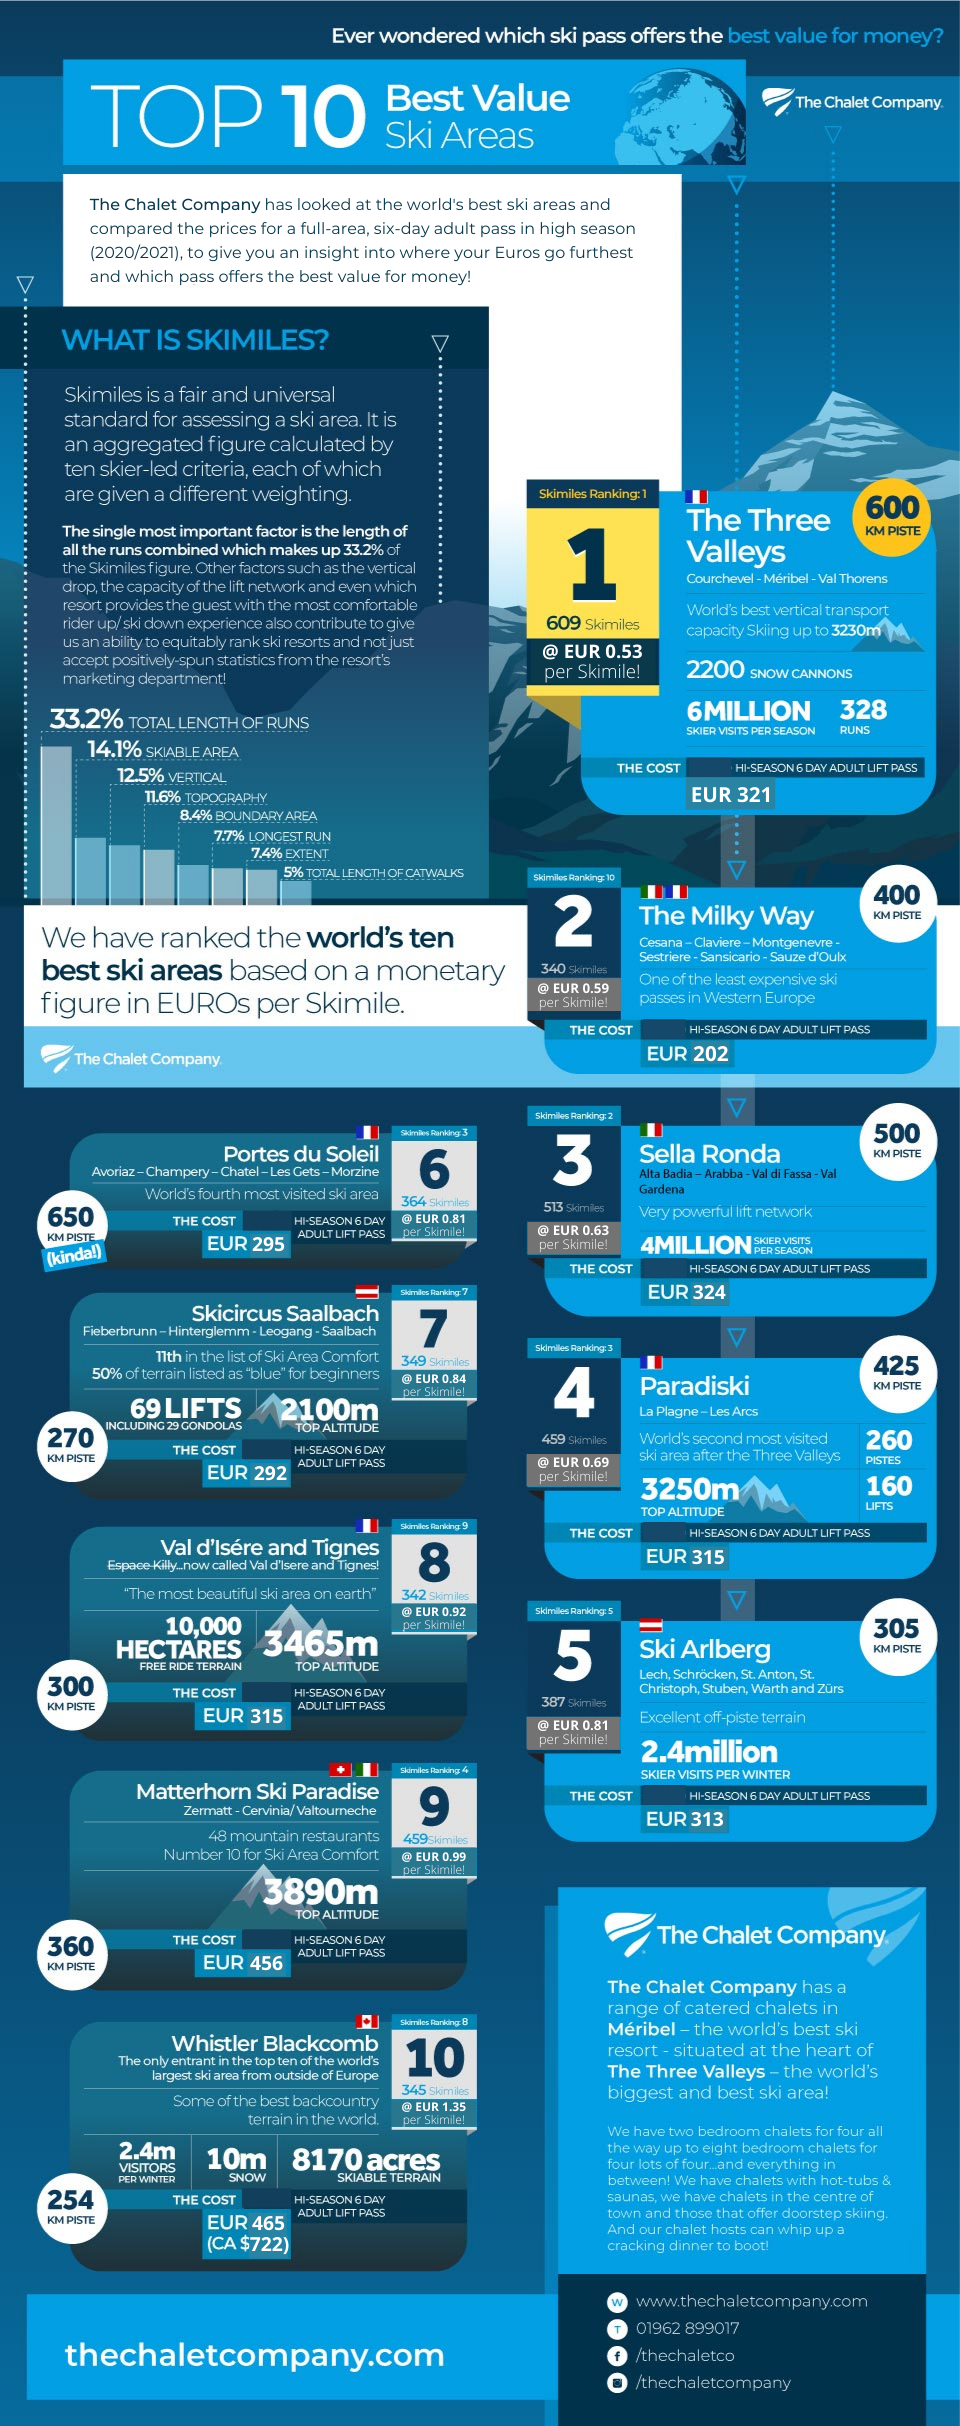 An infographic comparing the best value lift passes for skiing